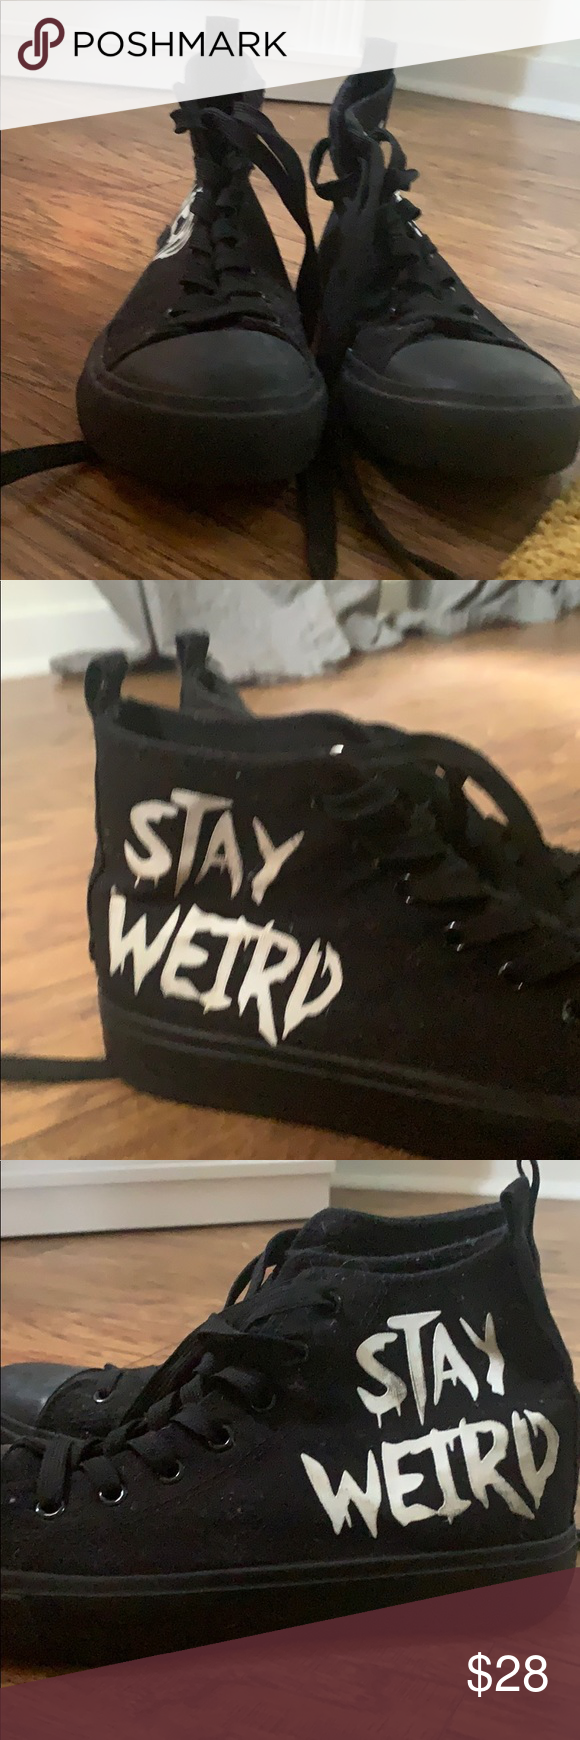 "Hot Topic Riverdale Jughead ""Stay Weird"" high tops Hot Topic Riverdale Jughead ""Stay Weird"" high tops semi worn Hot Topic Shoes Flats & Loafers #hottopicclothes Hot Topic Riverdale Jughead ""Stay Weird"" high tops Hot Topic Riverdale Jughead ""Stay Weird"" high tops semi worn Hot Topic Shoes Flats & Loafers #hottopicclothes"